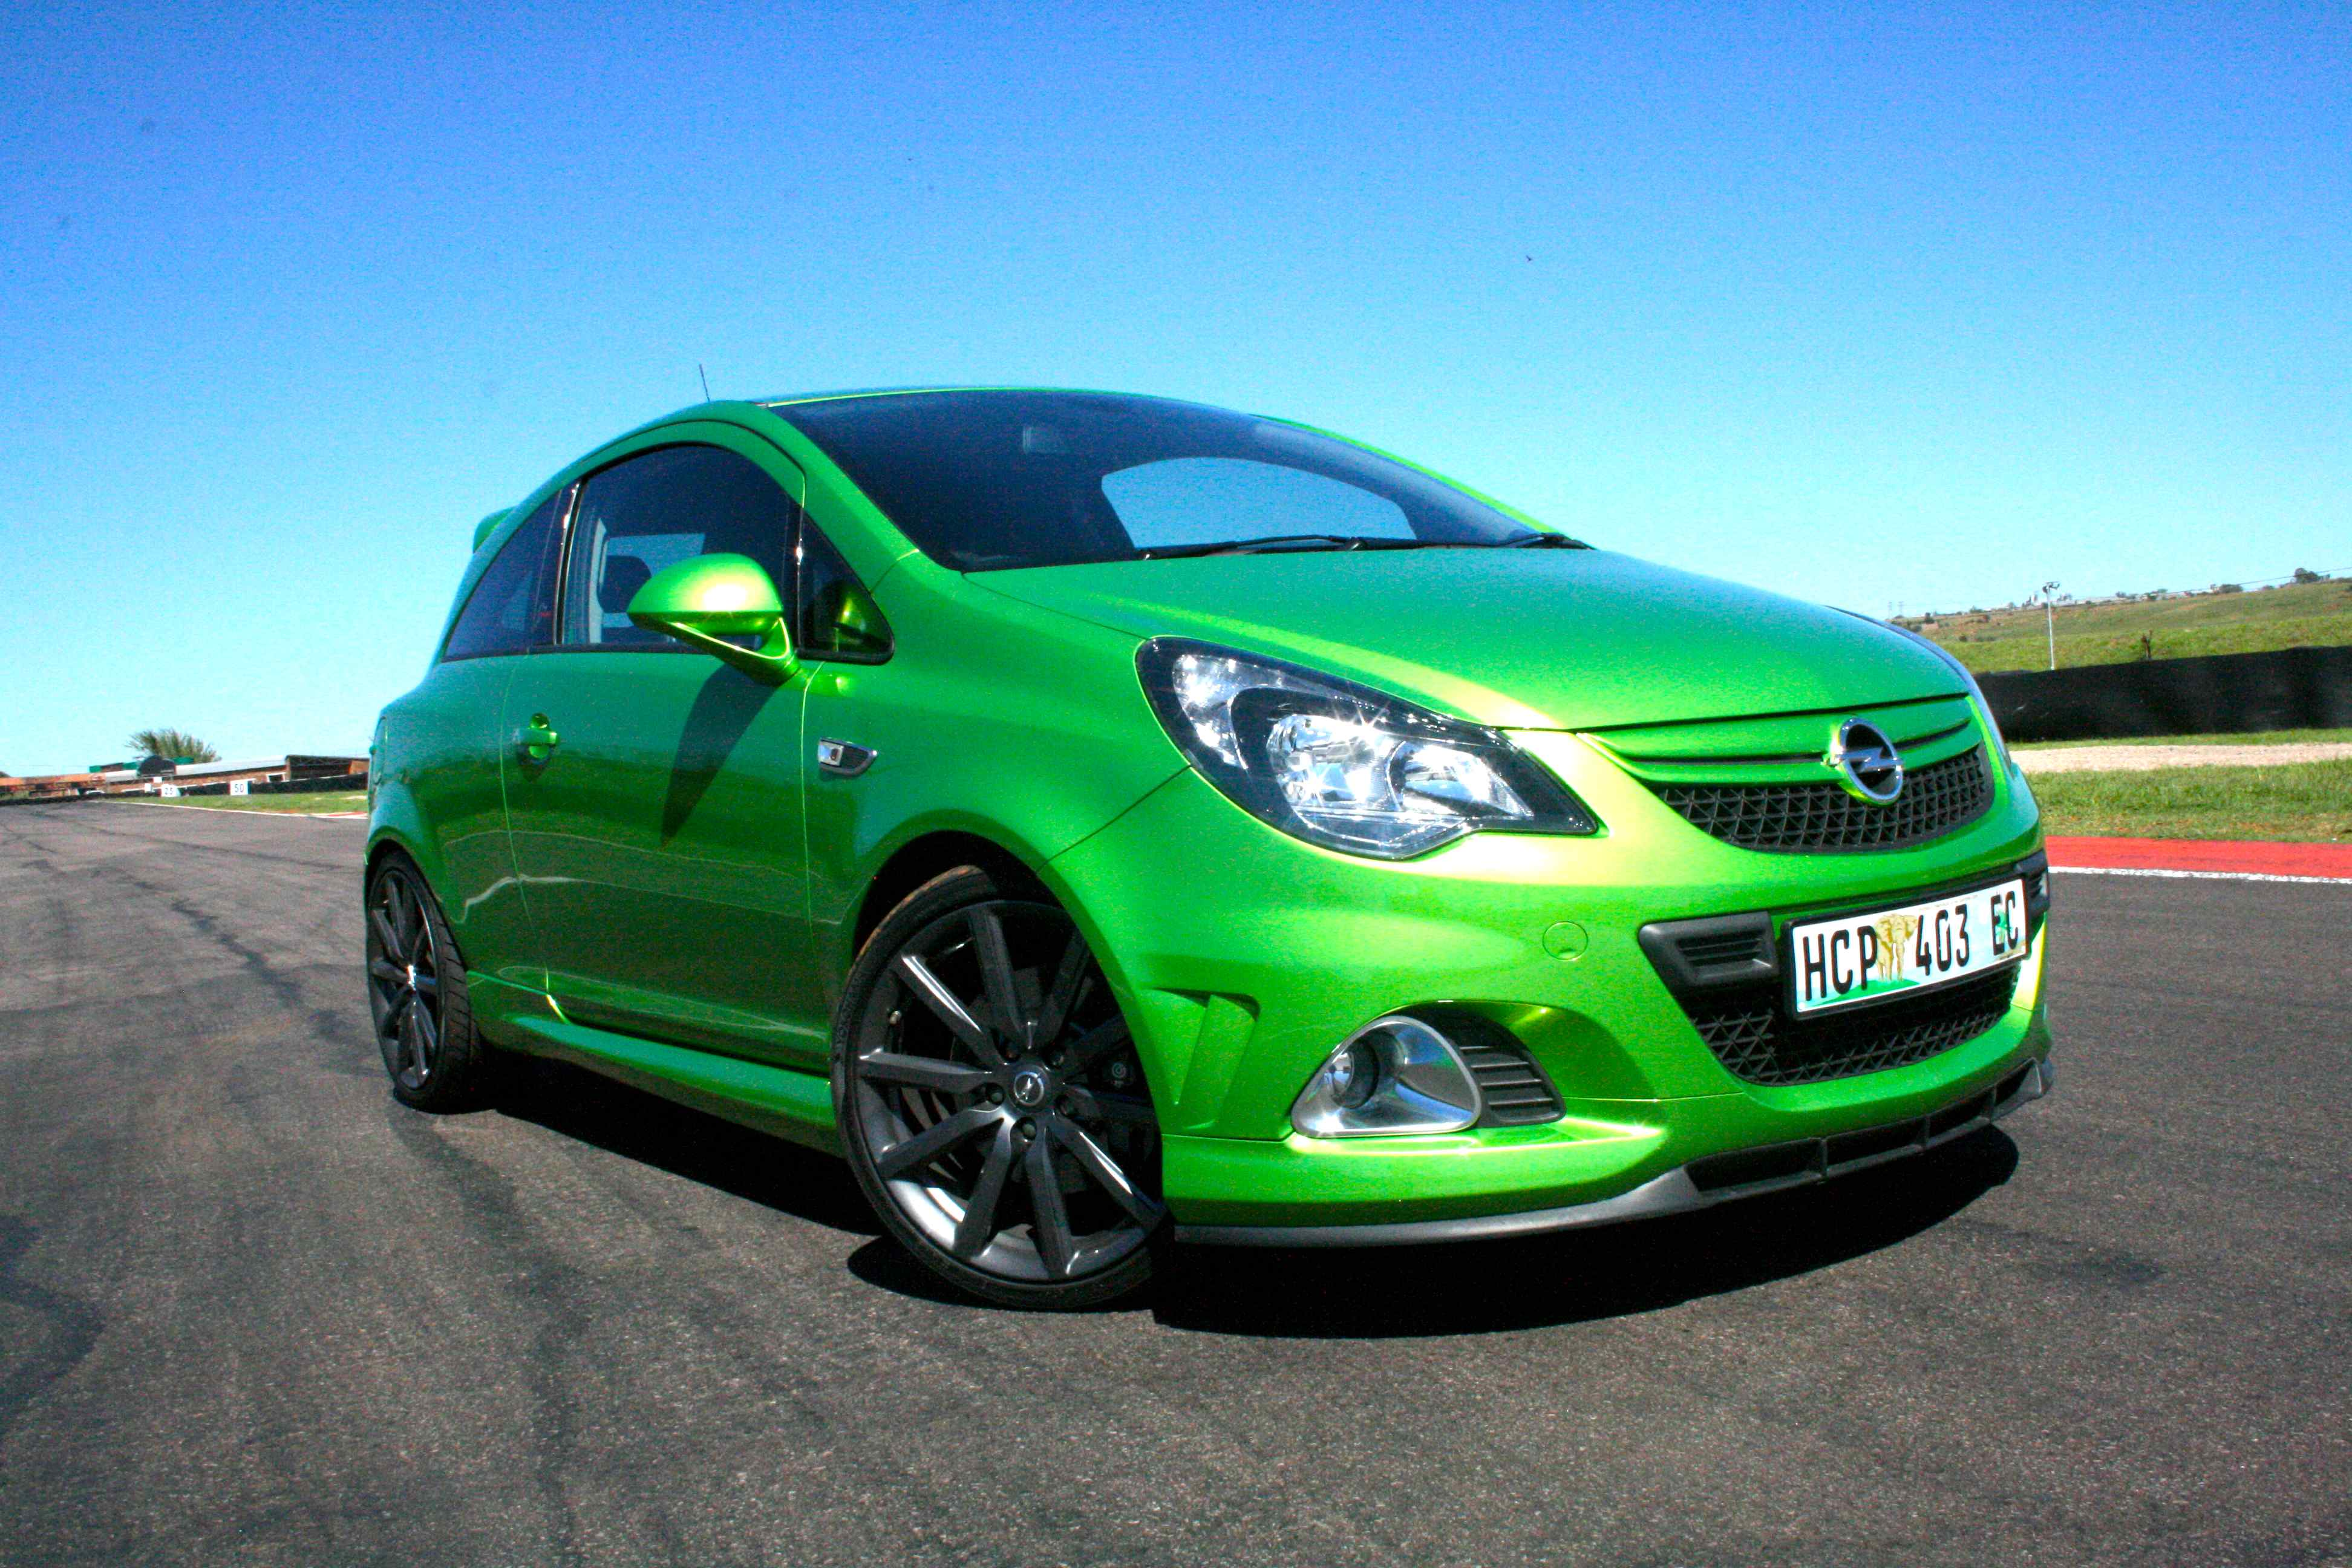 opel corsa opc n rburgring edition 2013 new car review surf4cars motoring. Black Bedroom Furniture Sets. Home Design Ideas